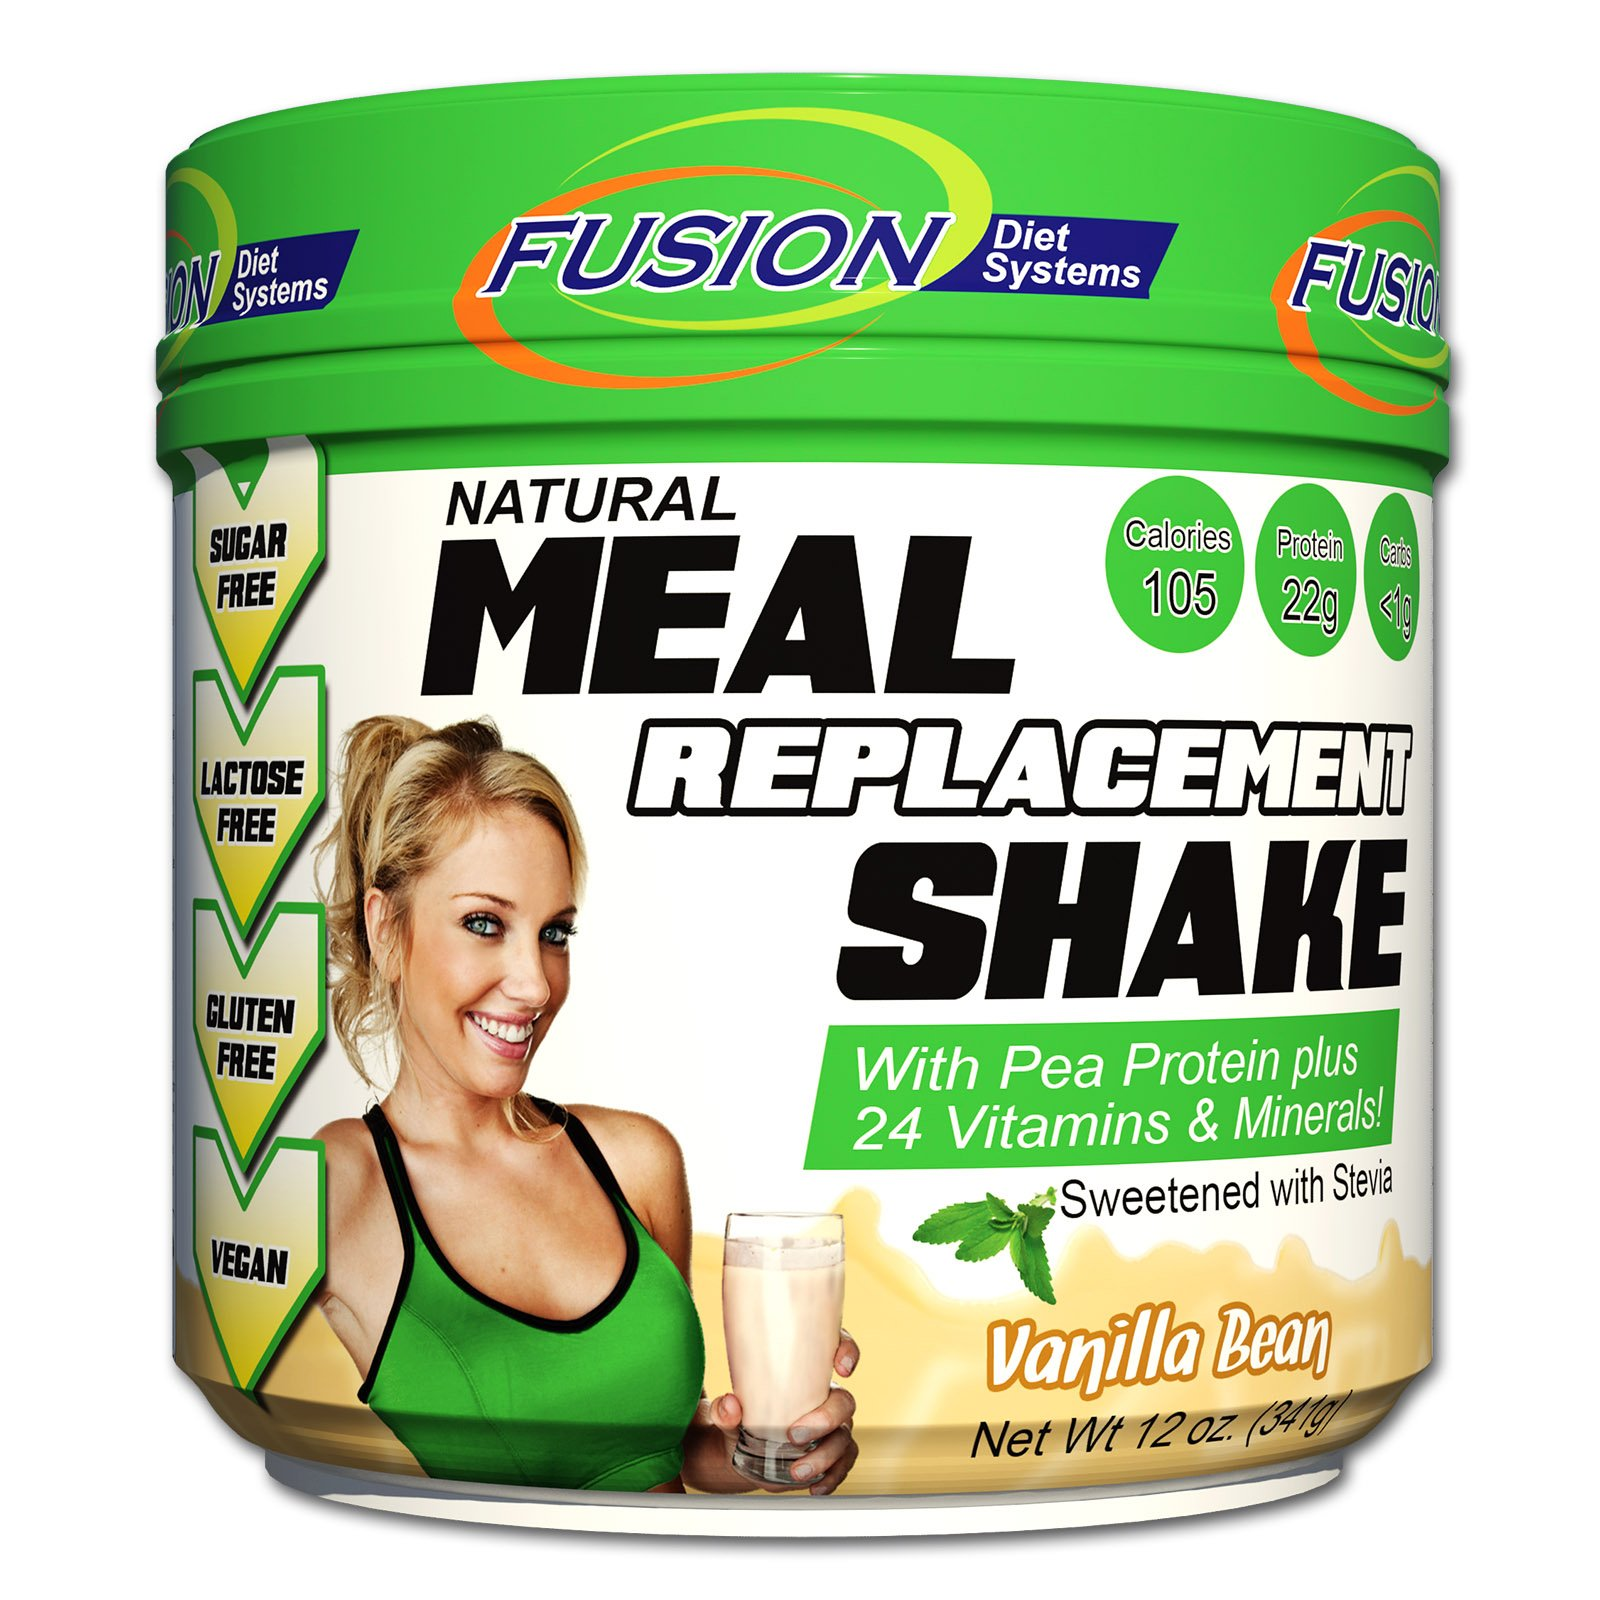 Fusion Plant Based Vegan Meal Replacement Protein Powder – Vanilla Bean Flavor, Best Pure Raw Complete Sports Performance Shake, Gluten-Free, Sugar-Free, 10 Servings, by Fusion Diet Systems